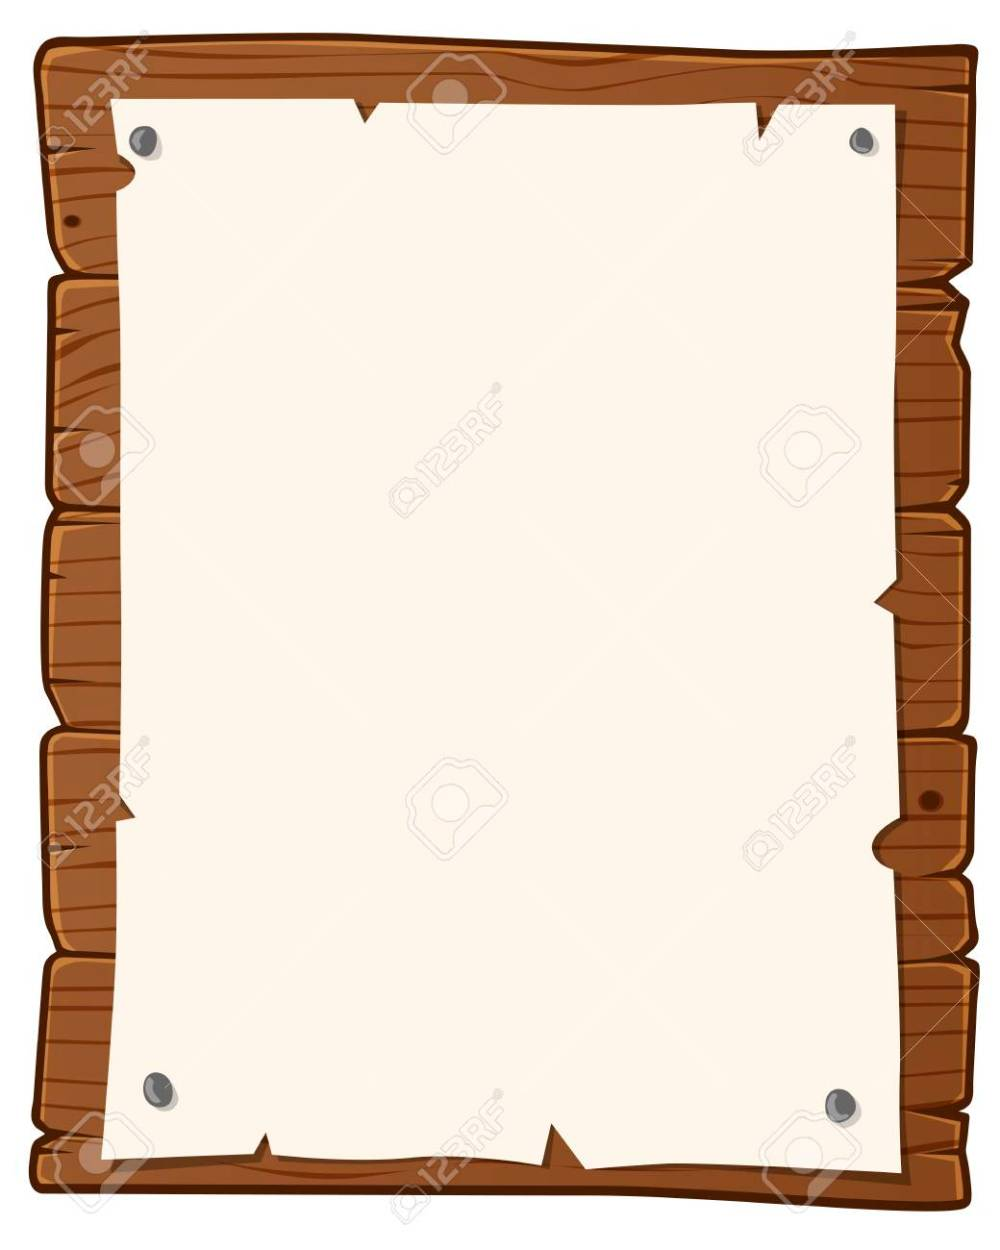 medium resolution of vector wooden bulletin board with paper for writing text